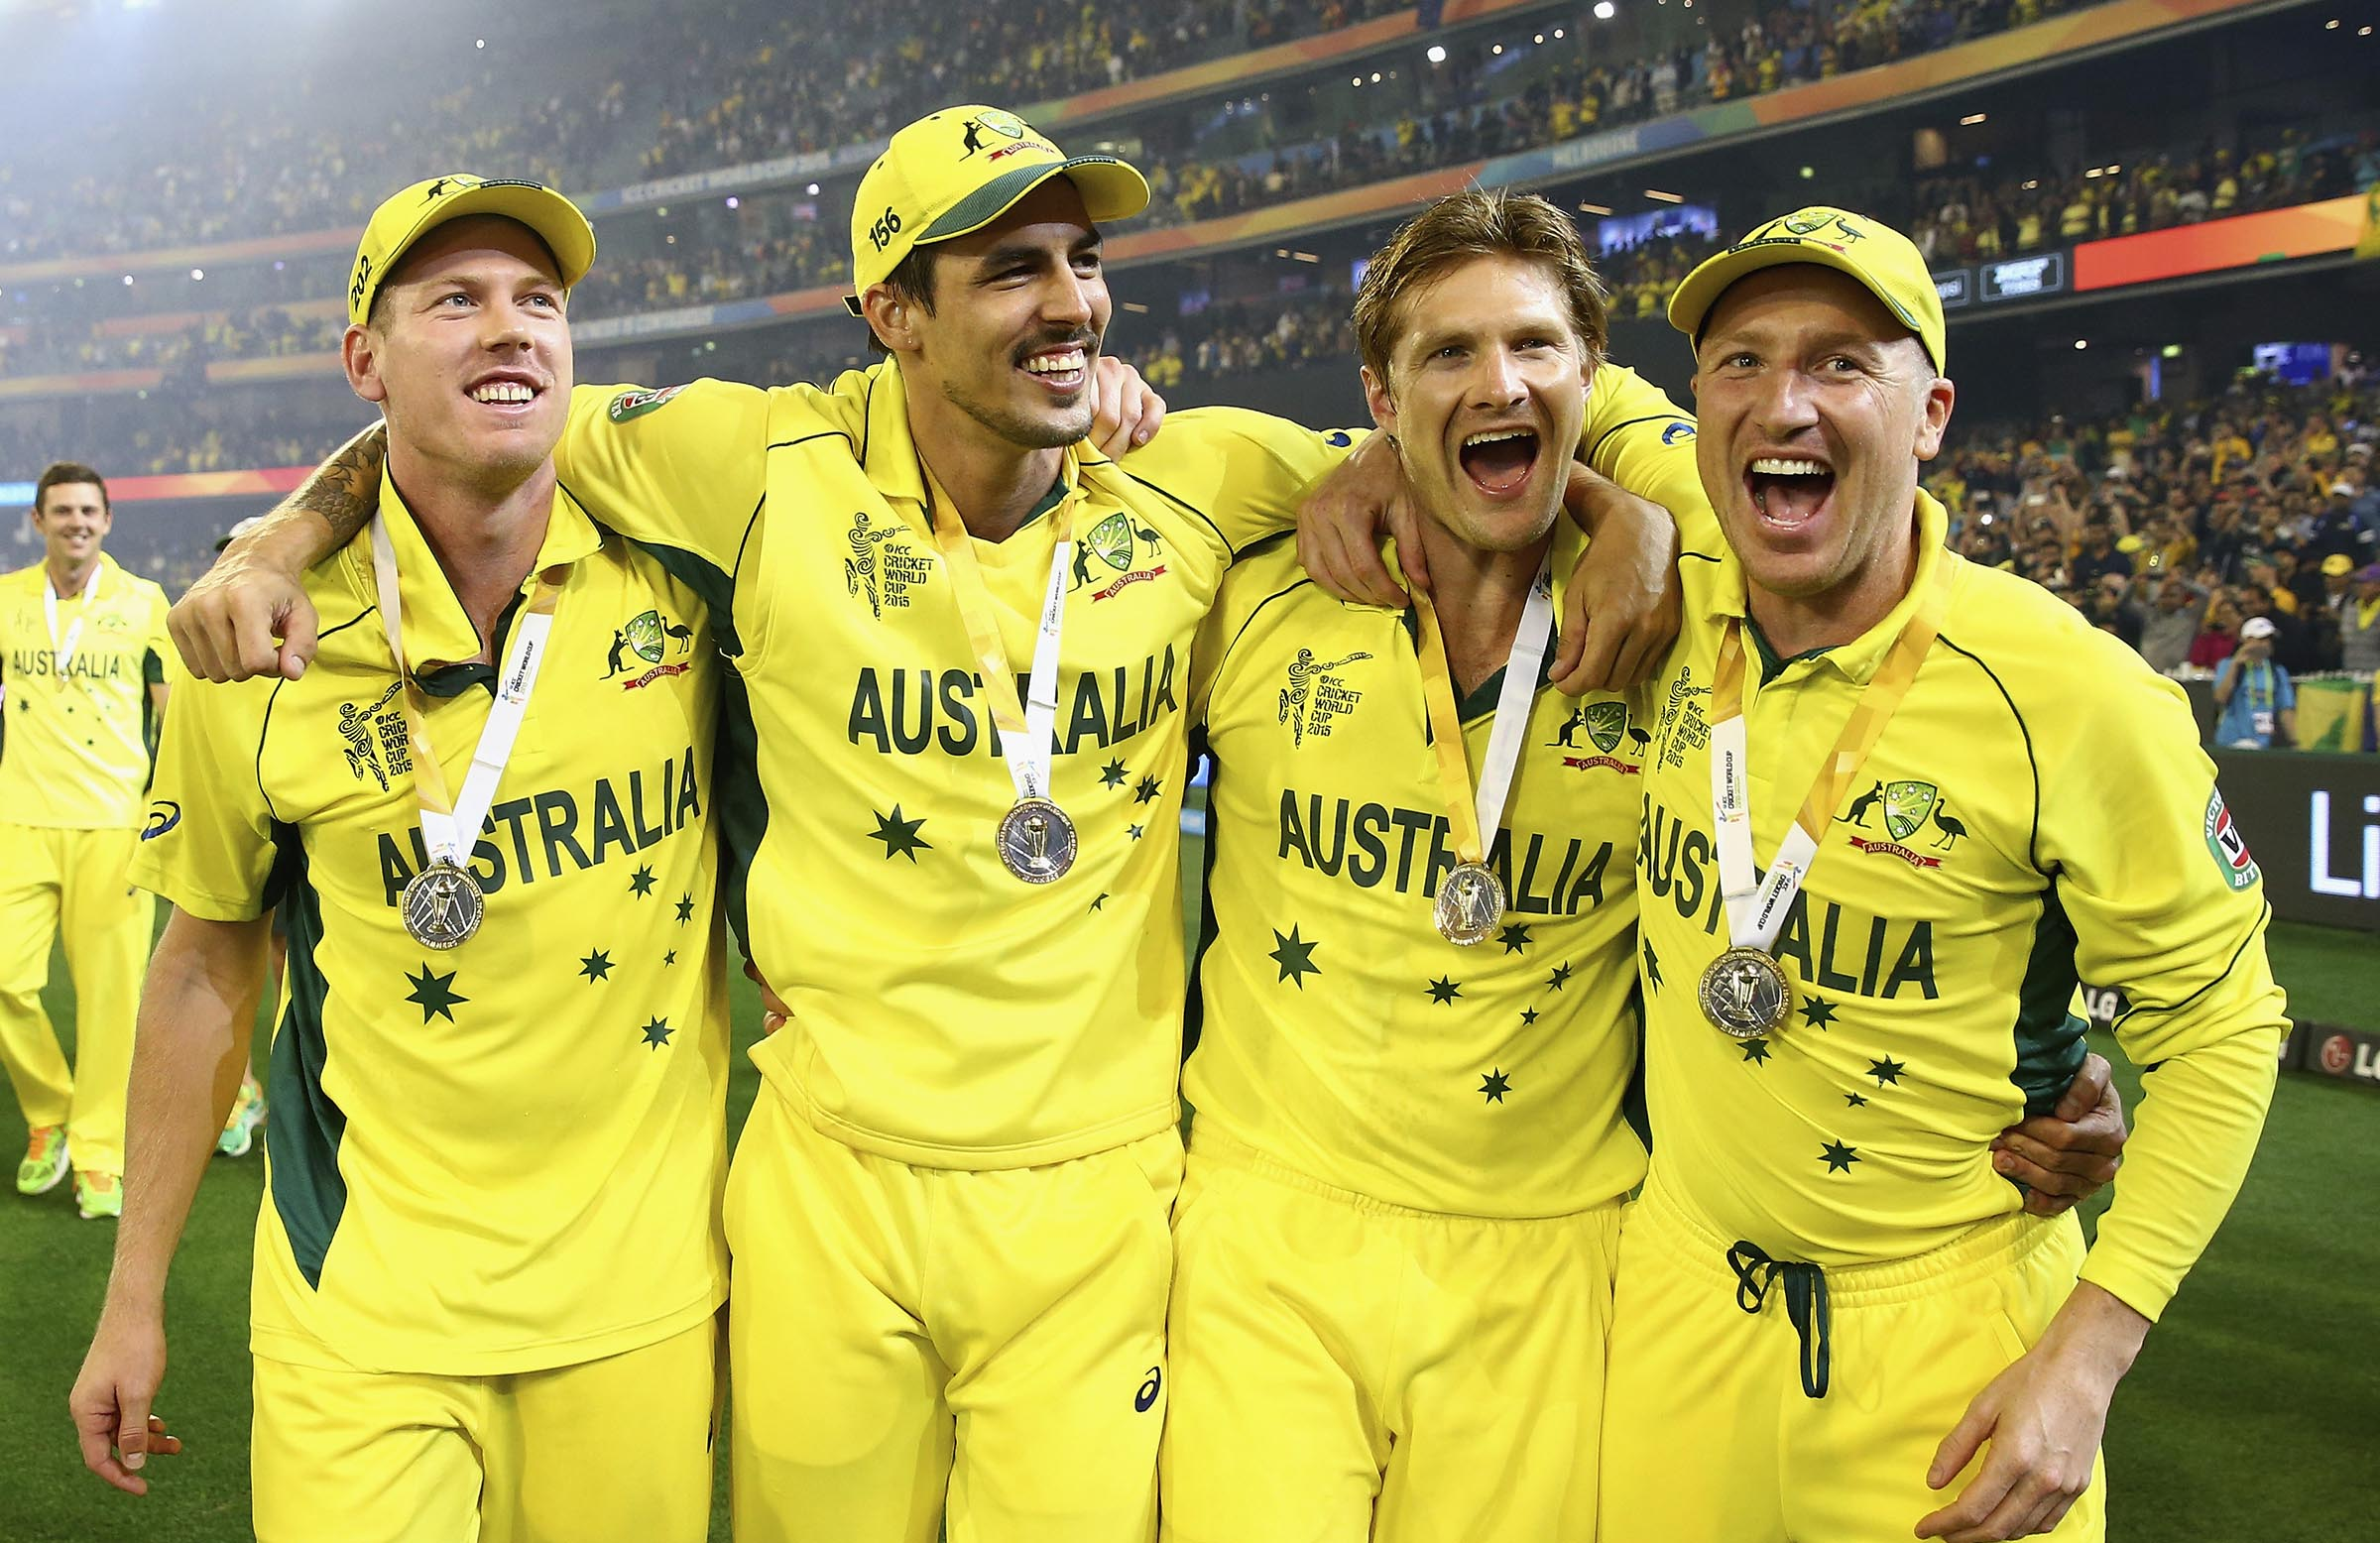 Australian gold: The 2015 edition enjoyed final glory against the Kiwis // Getty